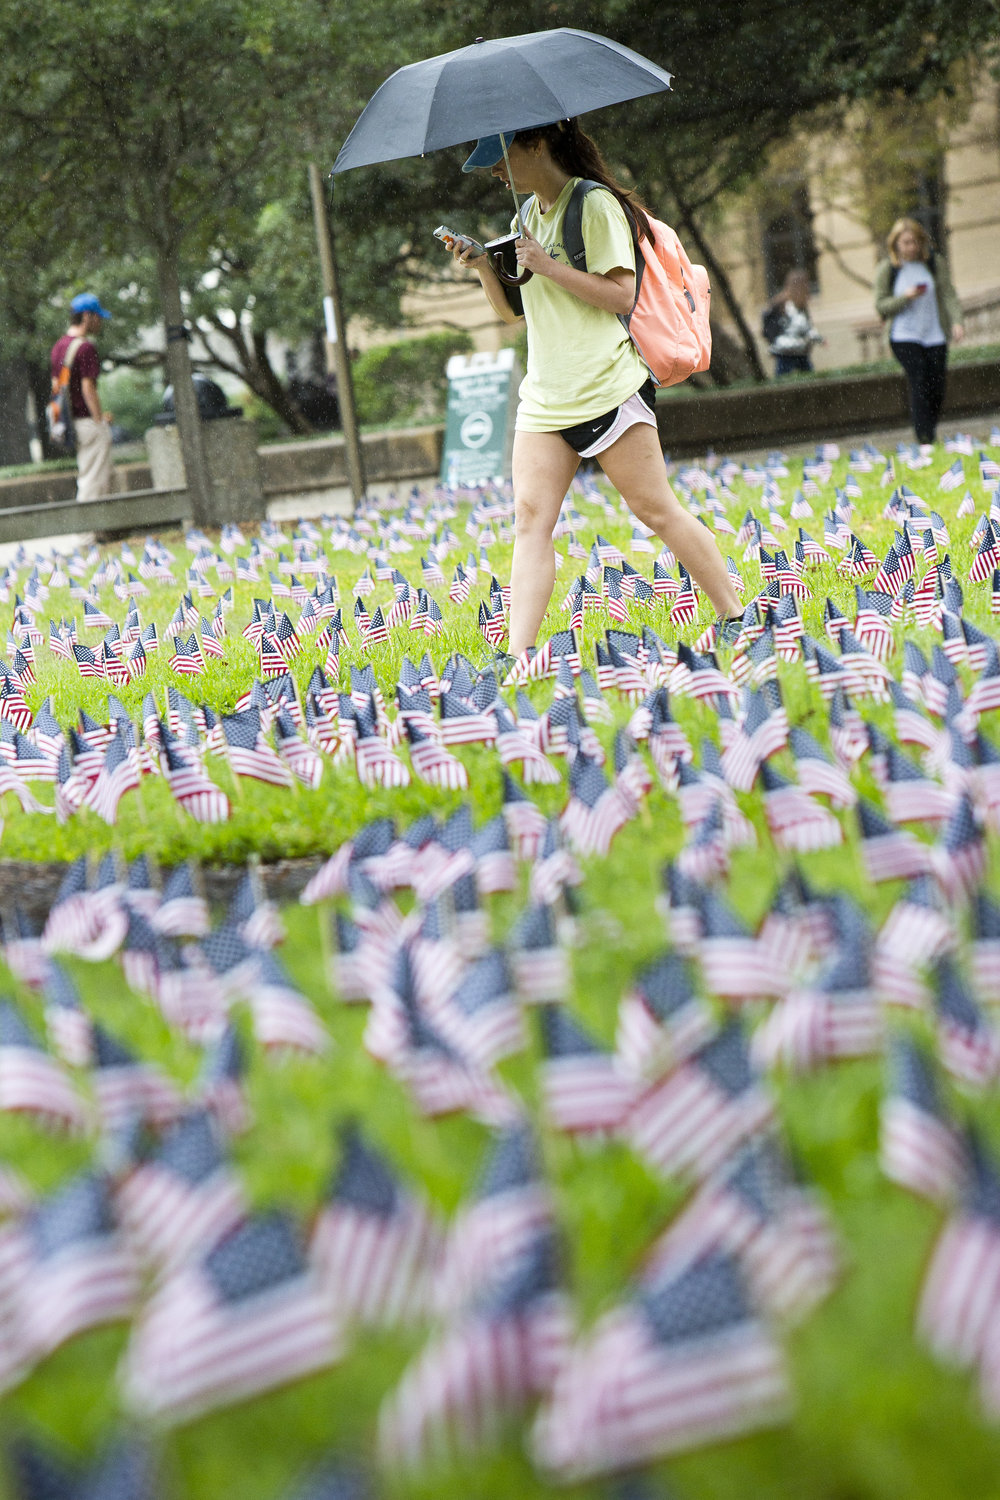 Texas A&M junior sociology major Madi De Amaral make her way through the the Academic Plaza where the university and the Lone Survivor Foundation have set out thousands of flags in an extended Veterans Day observance, Wednesday, Nov. 9, 2016, in College Station, Texas.